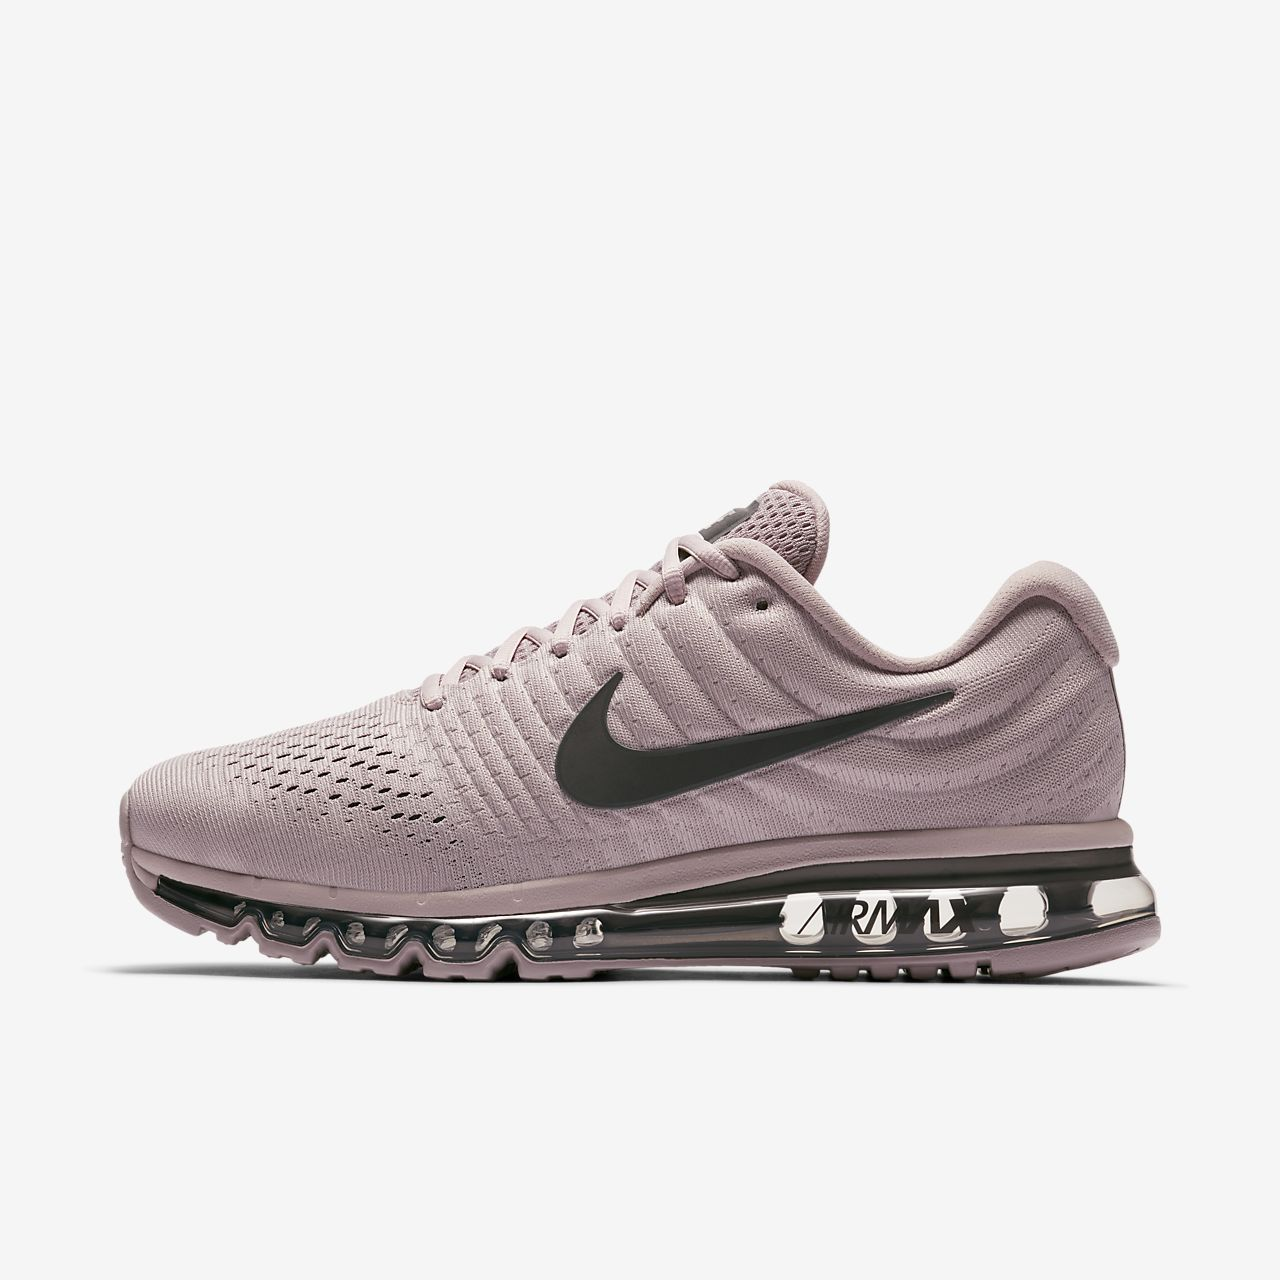 Chaussure HommeFr Pour Max 2017 Air Nike Se WE9ID2HY